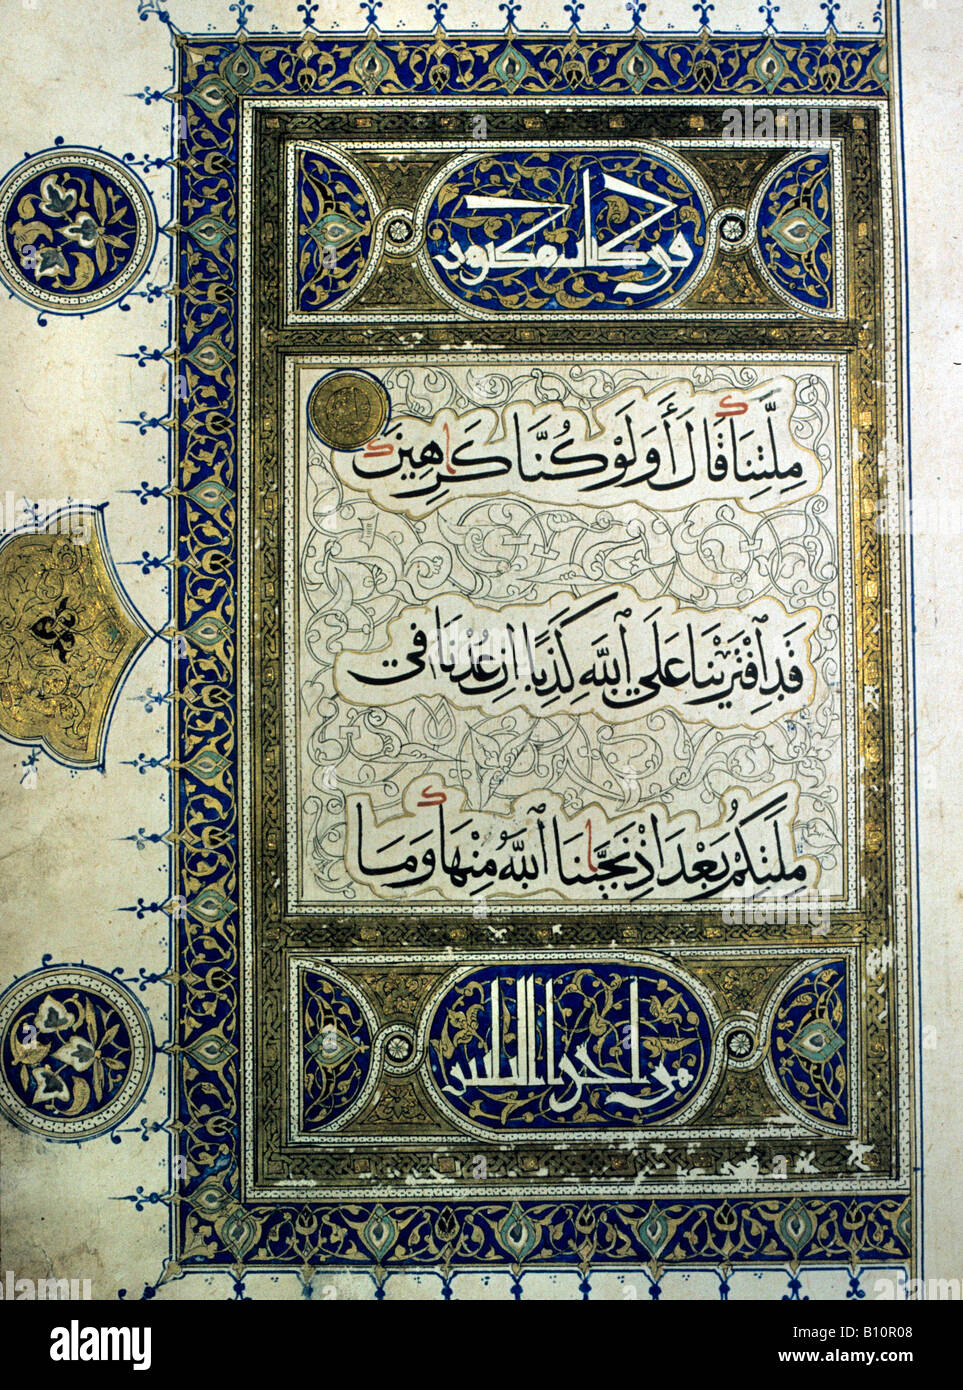 Koran frontispiece 14th c Egypt  Copyright AAA Collection - Stock Image